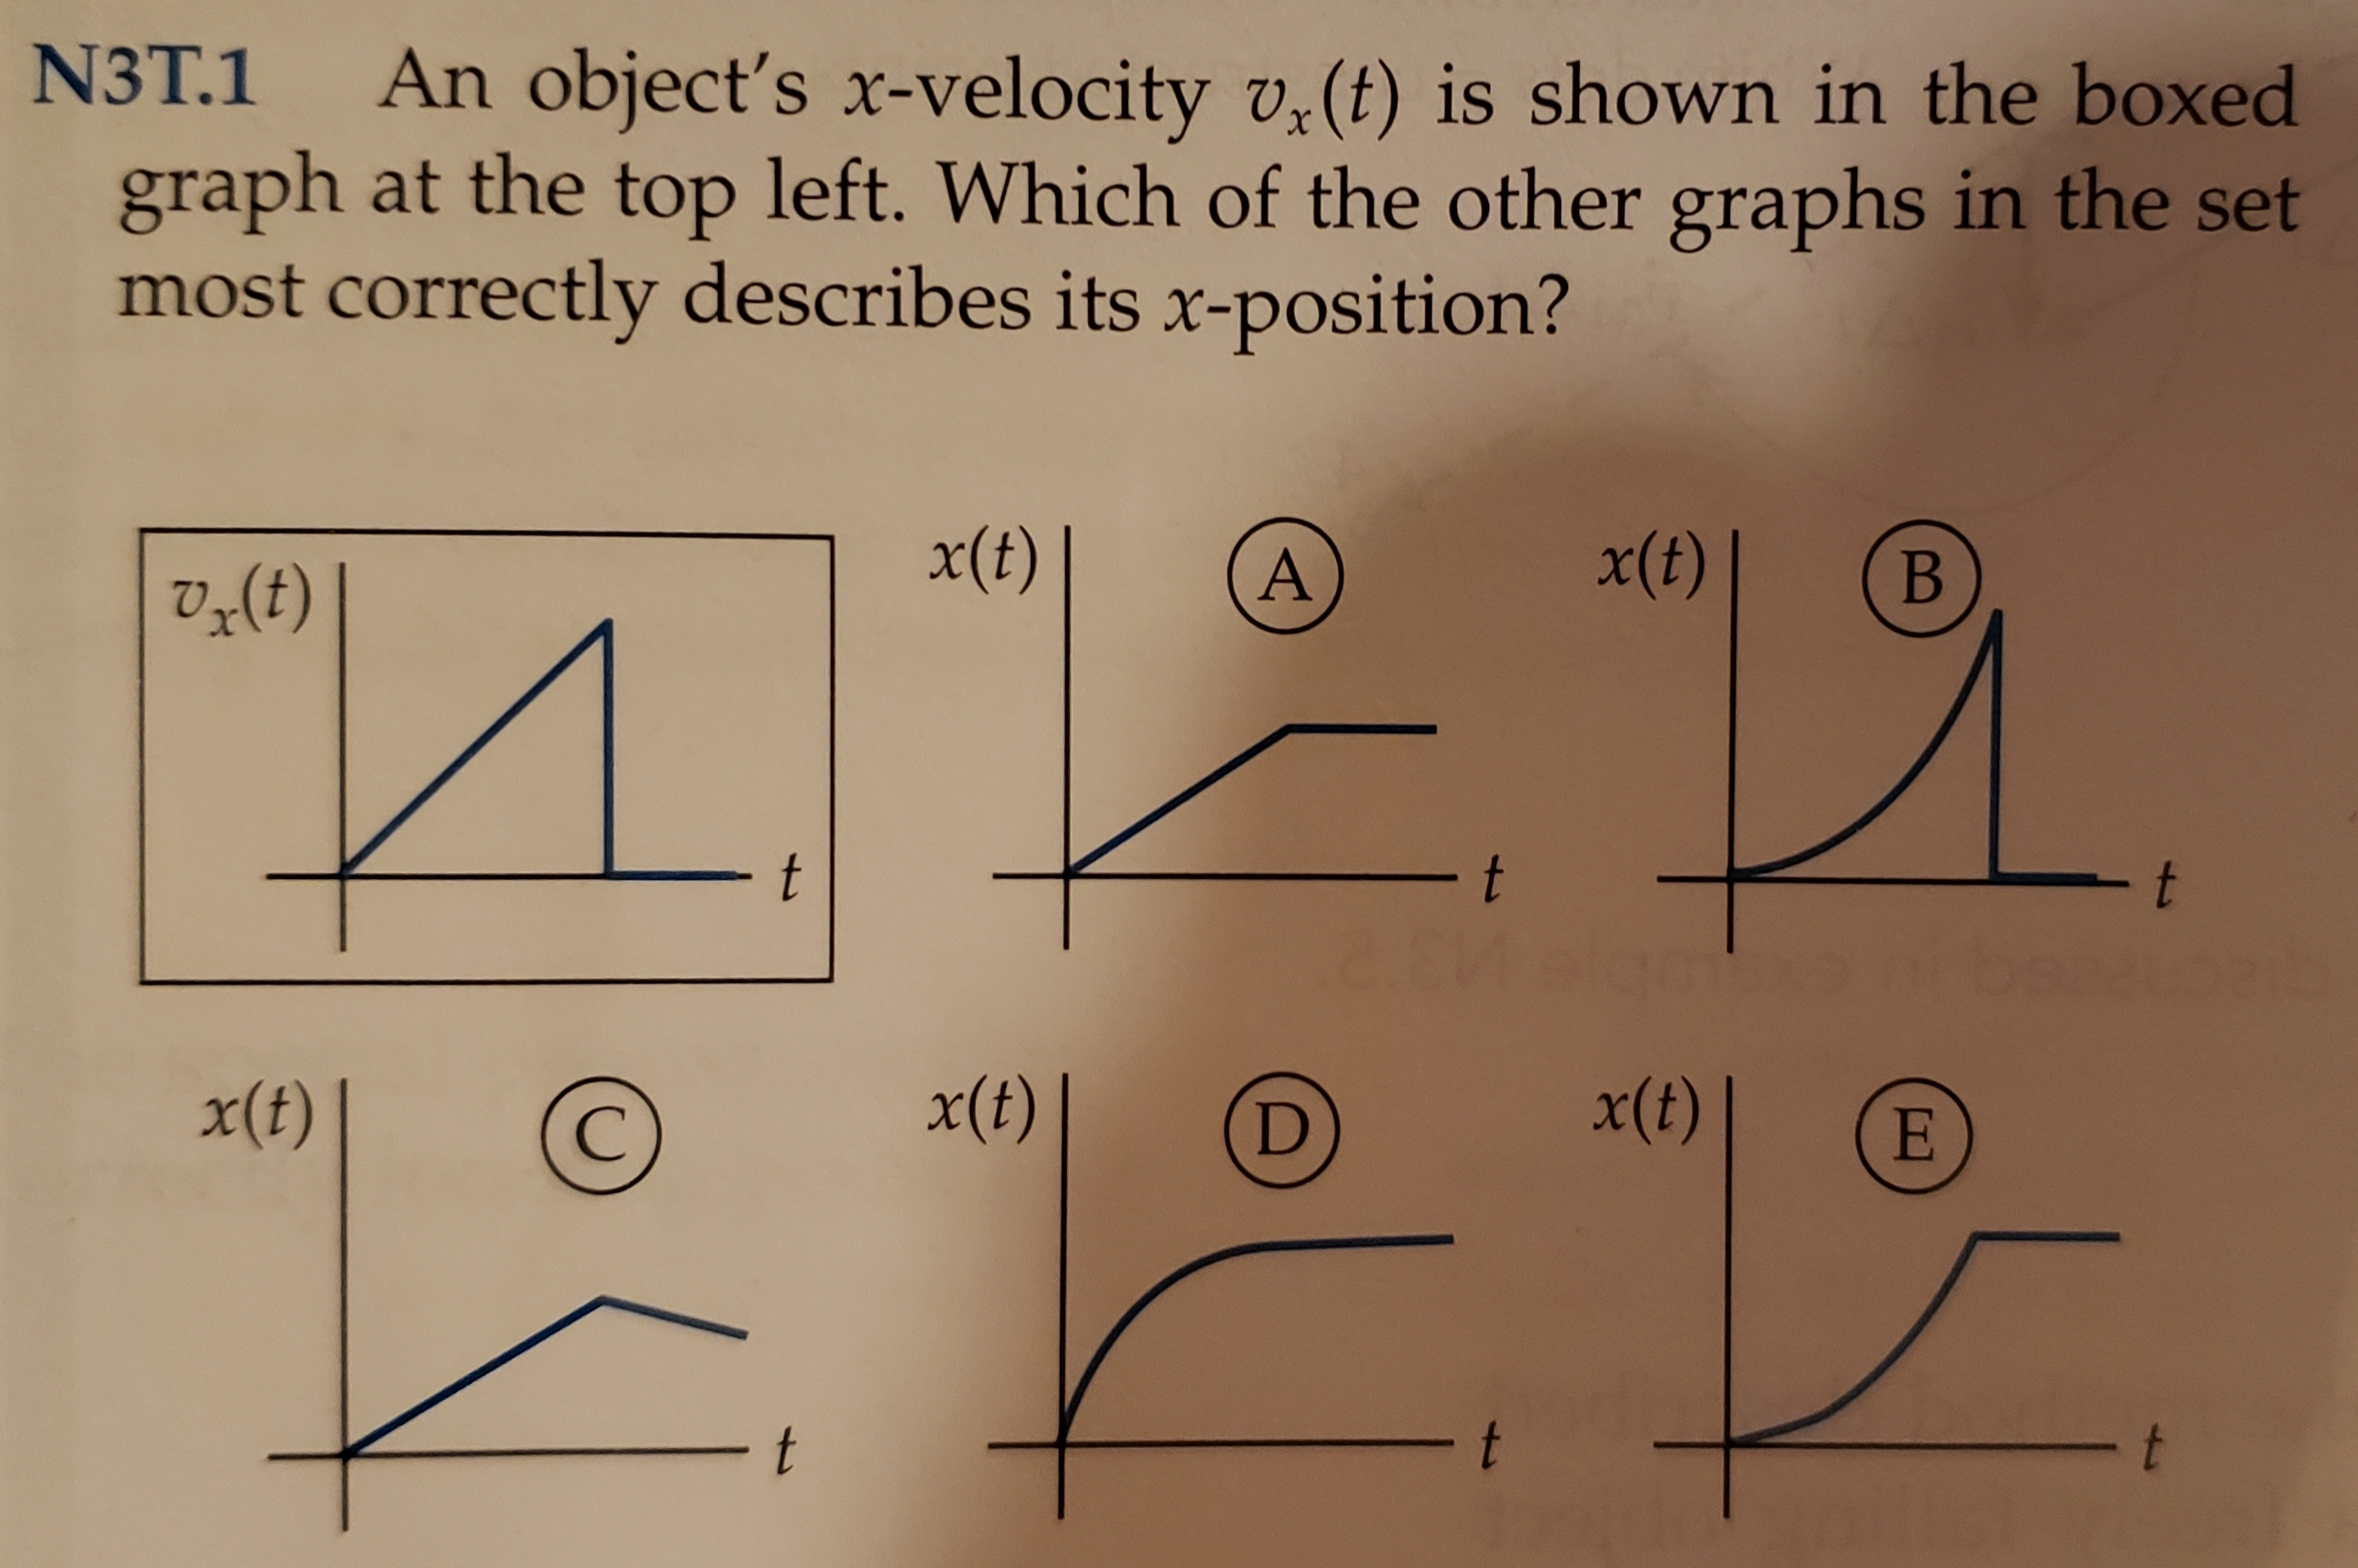 N3T.1 An object's x-velocity v,(t) is shown in the boxed graph at the top left. Which of the other graphs in the set most correctly describes its x-position? x(t) x(t) В И. 12 t t t x(t) x(t) x(t) E t